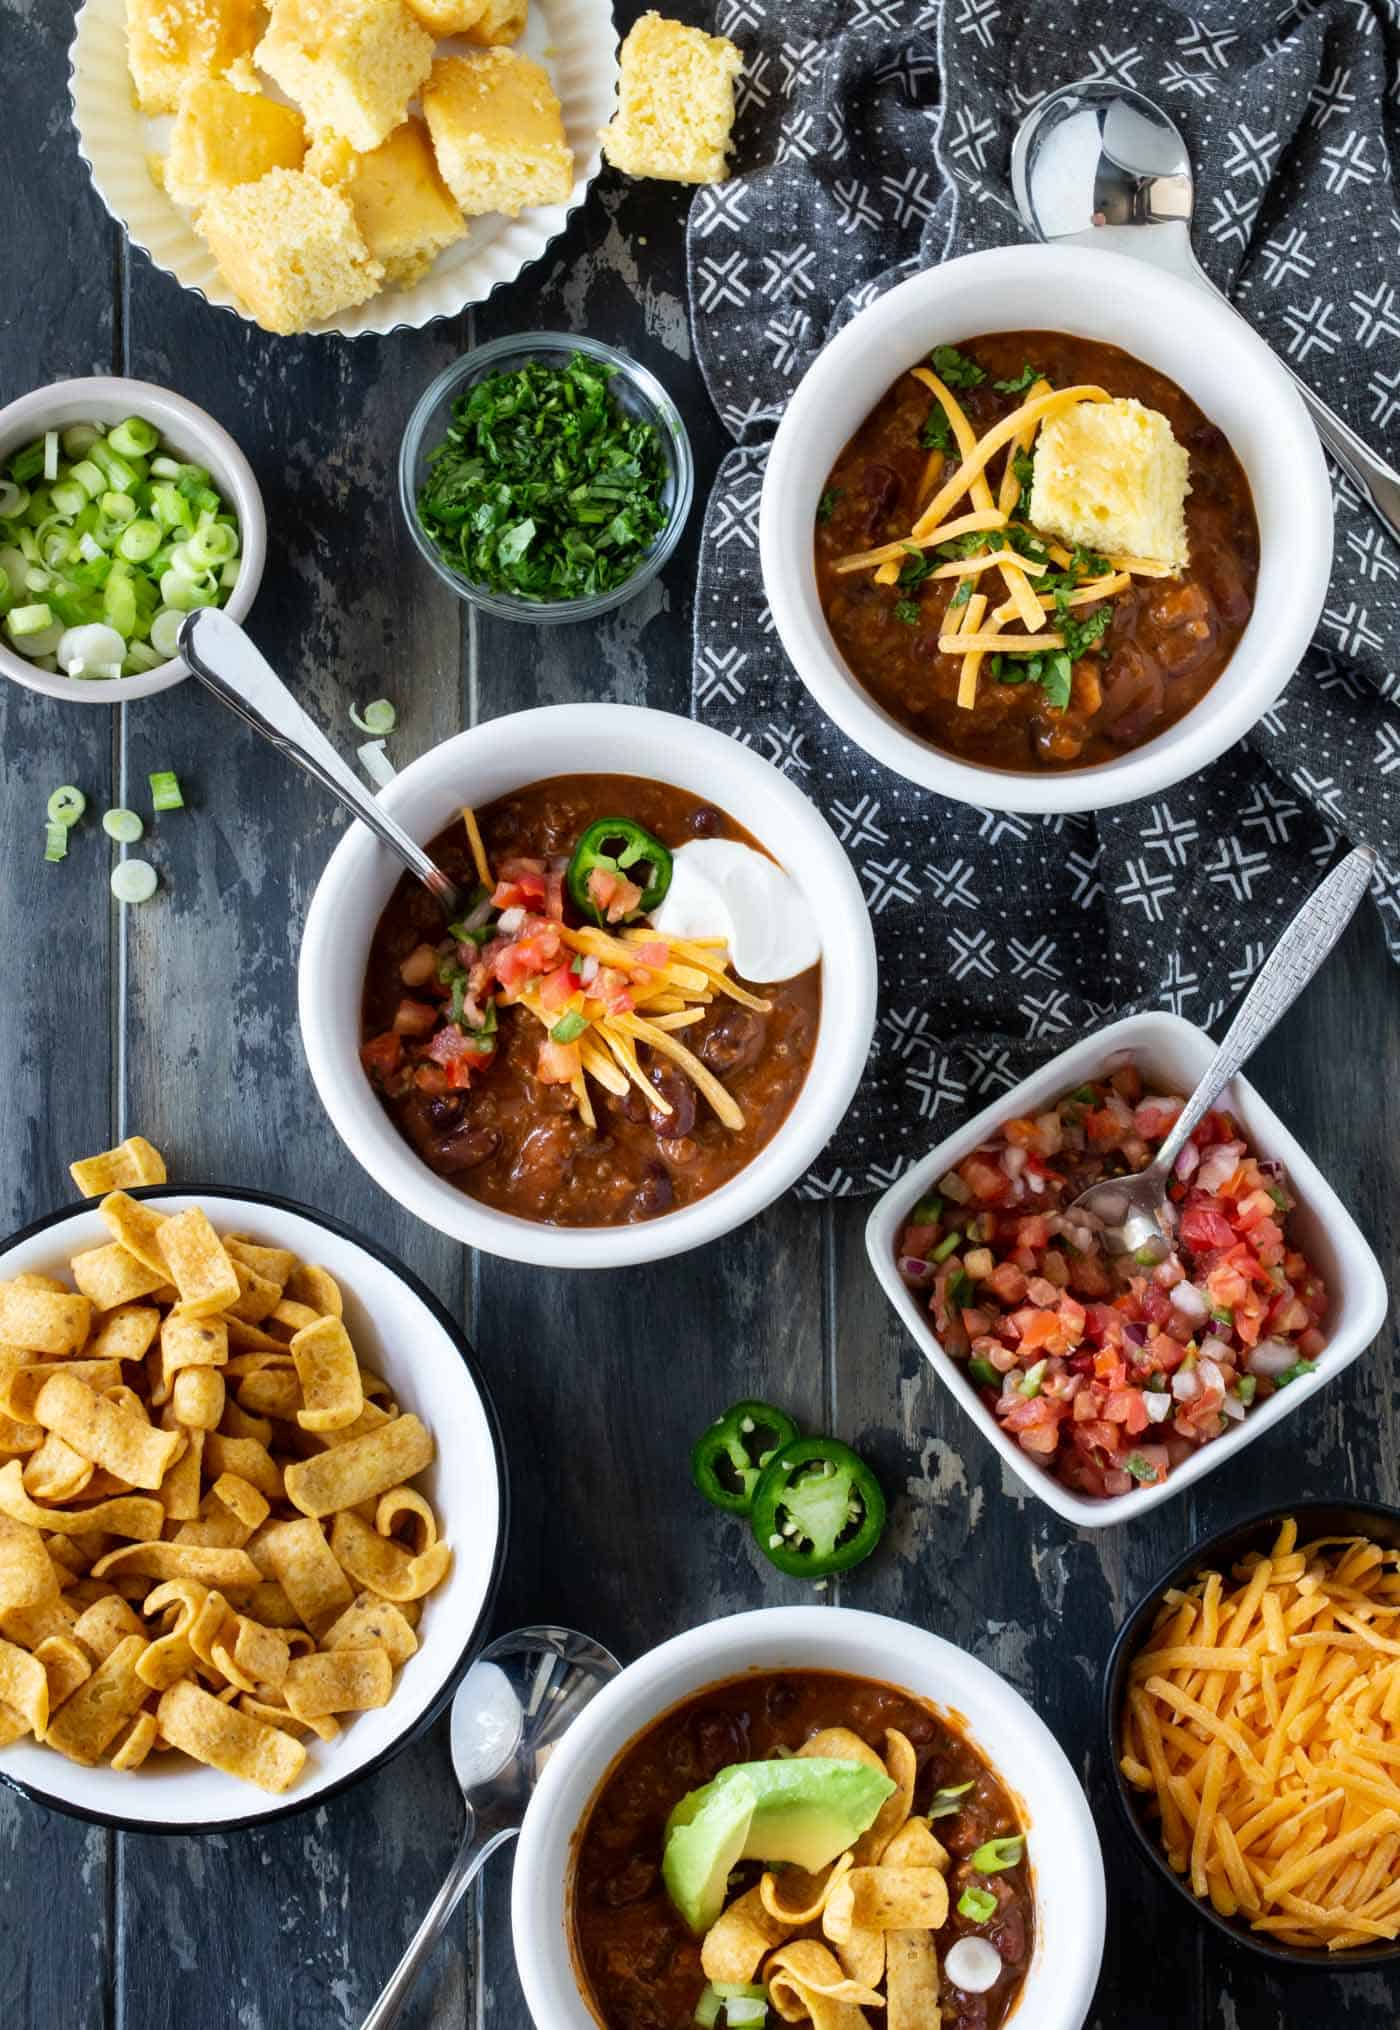 Three white bowls filled with chili and surrounded by bowls of chili toppings, including fritos, corn bread, green onions, pico de gallo, cilantro and shredded cheddar cheese.